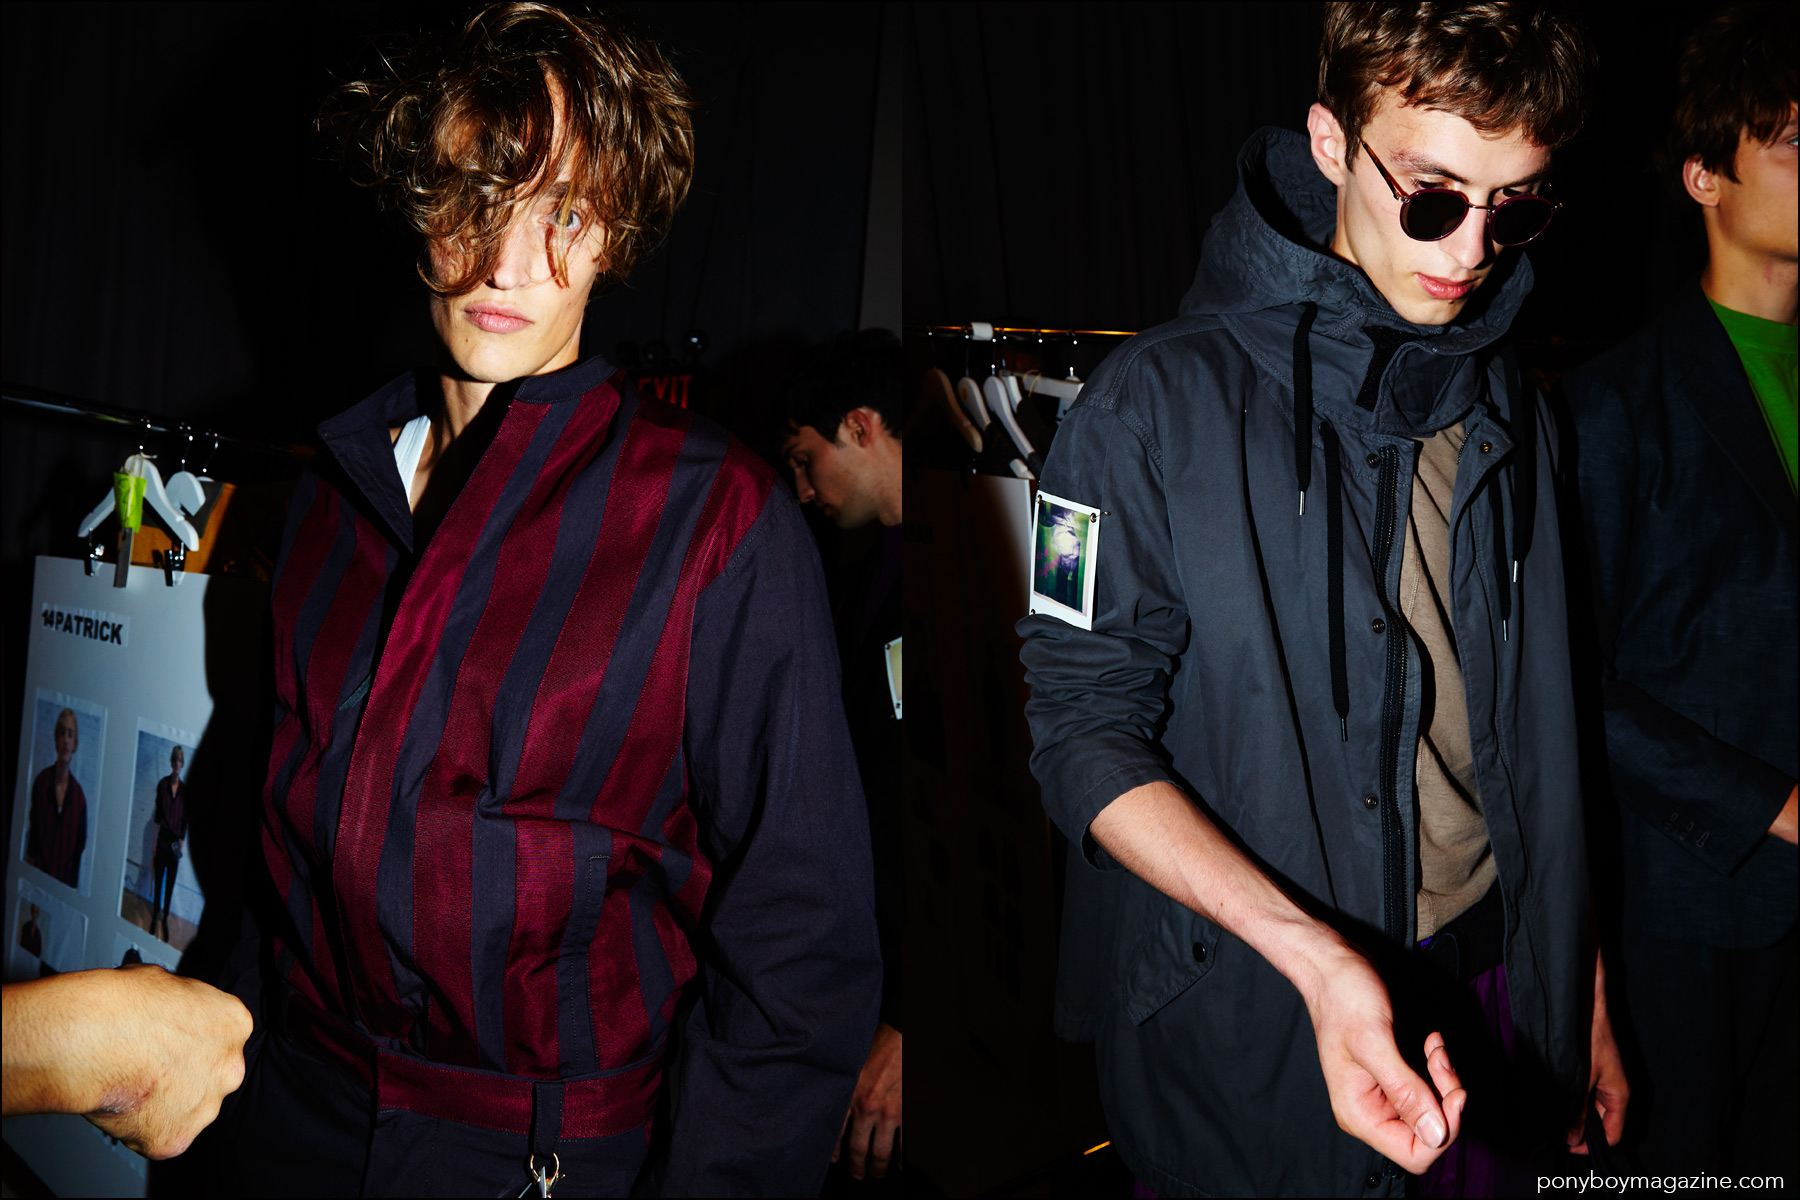 Model Zach Troost snapped backstage at Robert Geller Spring/Summer 2017 menswear show by Alexander Thompson for Ponyboy magazine NY.